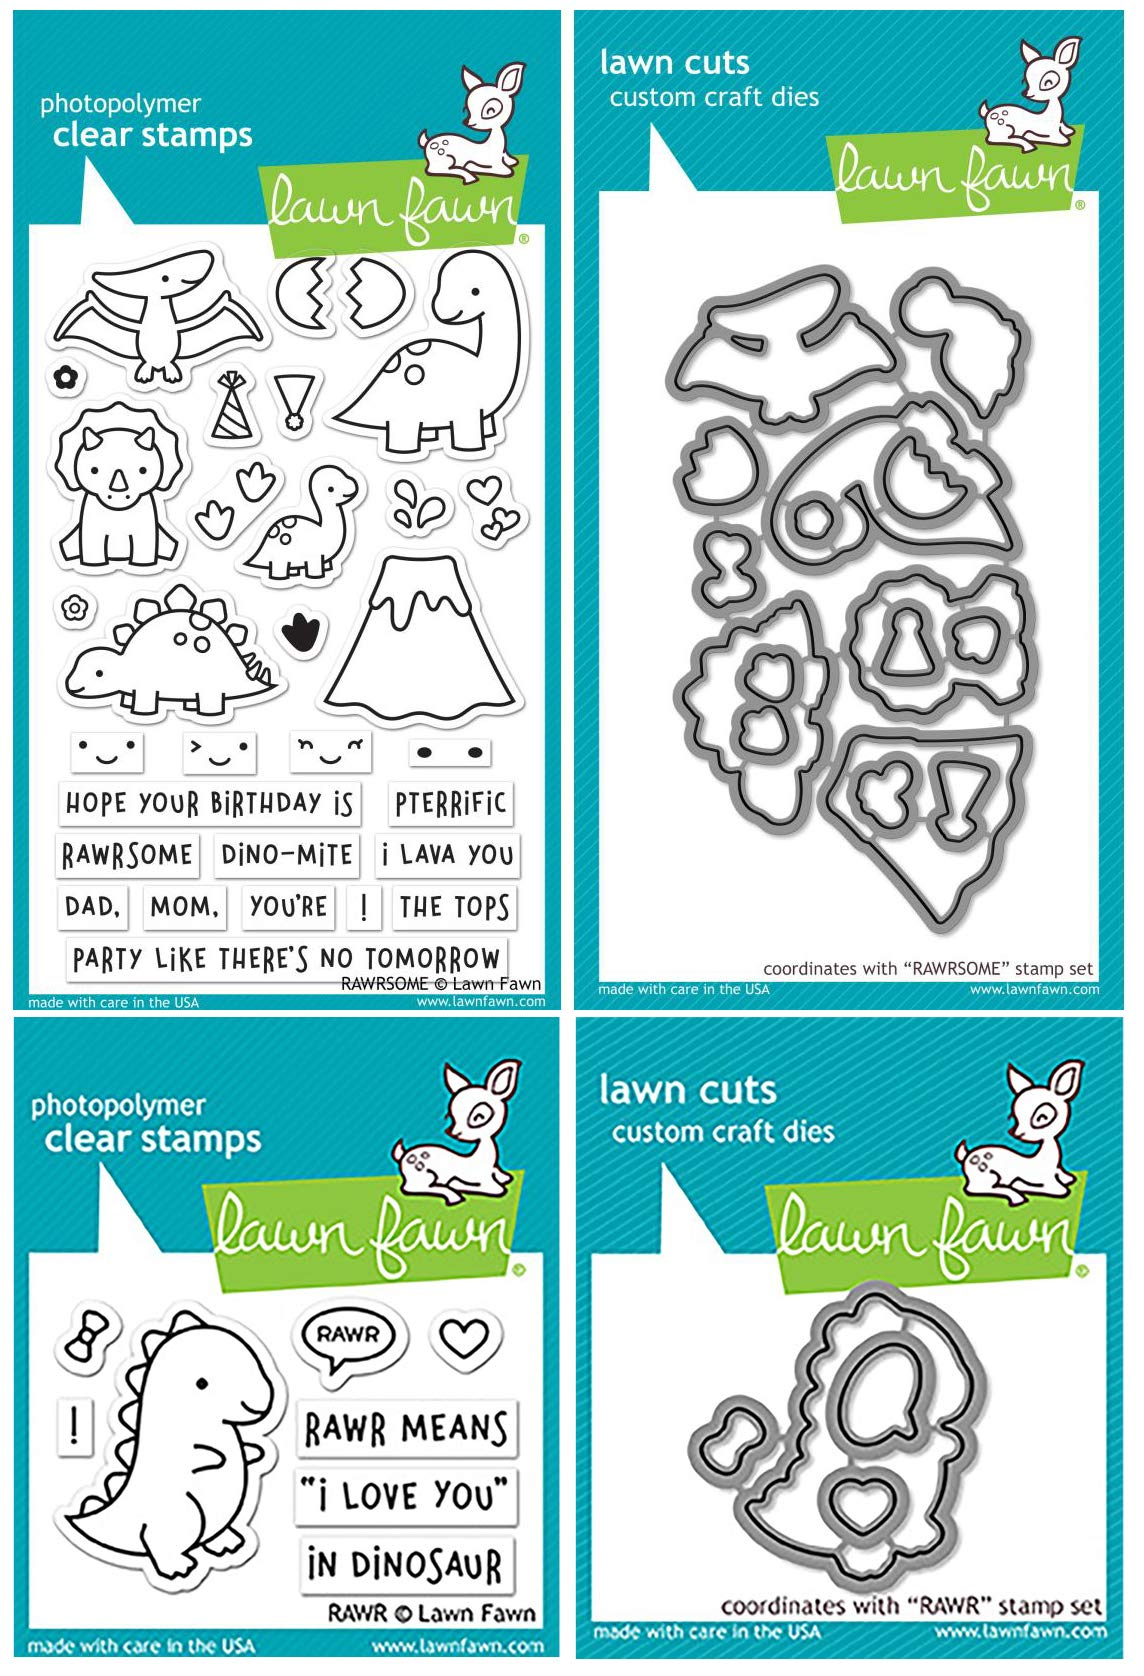 Lawn Fawn - Dinosaur Bundle - Rawrsome & Rawr Clear Stamp and Die Sets - 4 Items